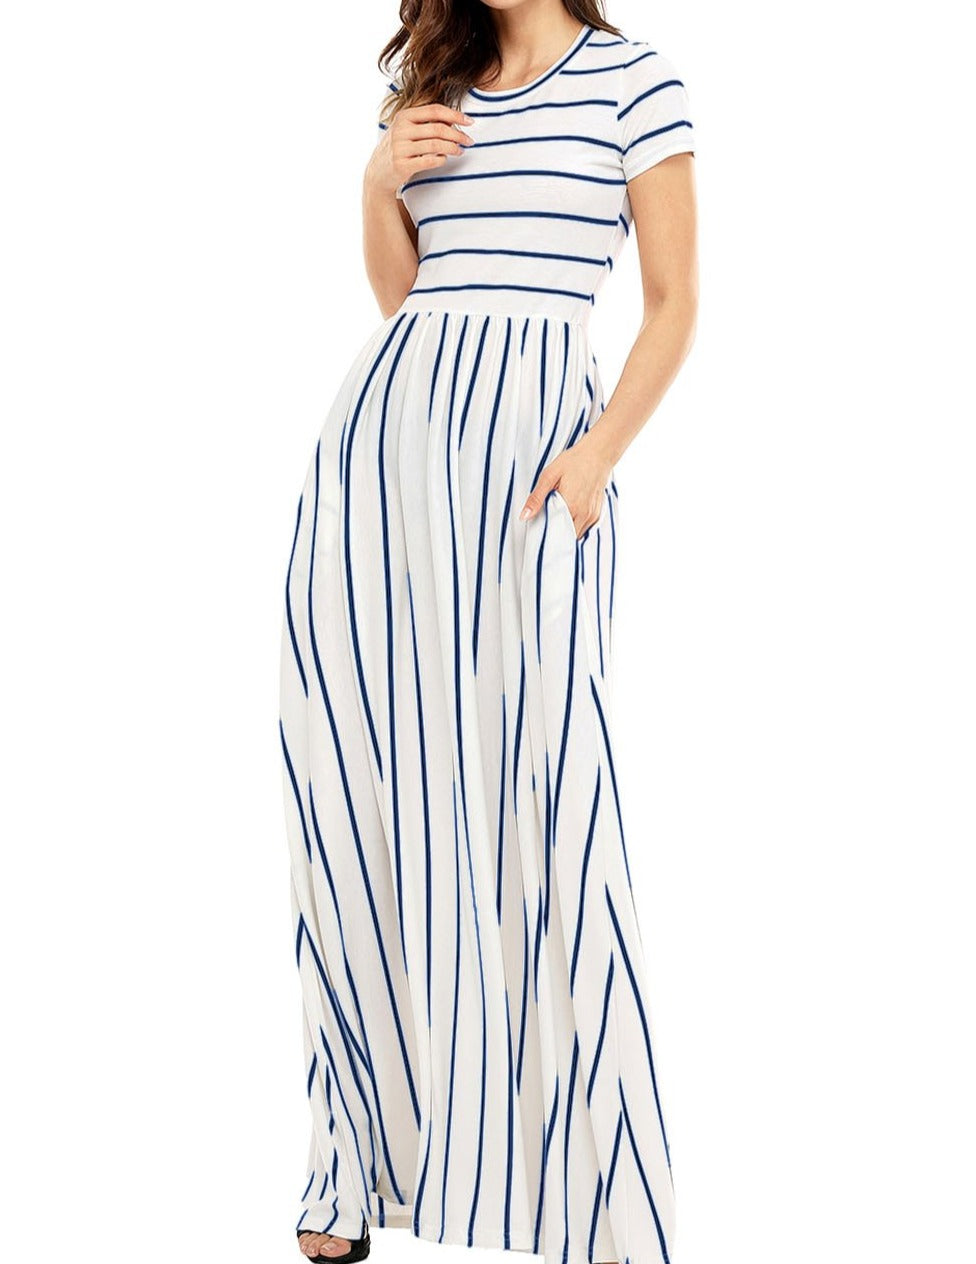 Blue Striped White Short Sleeve Maxi Dress